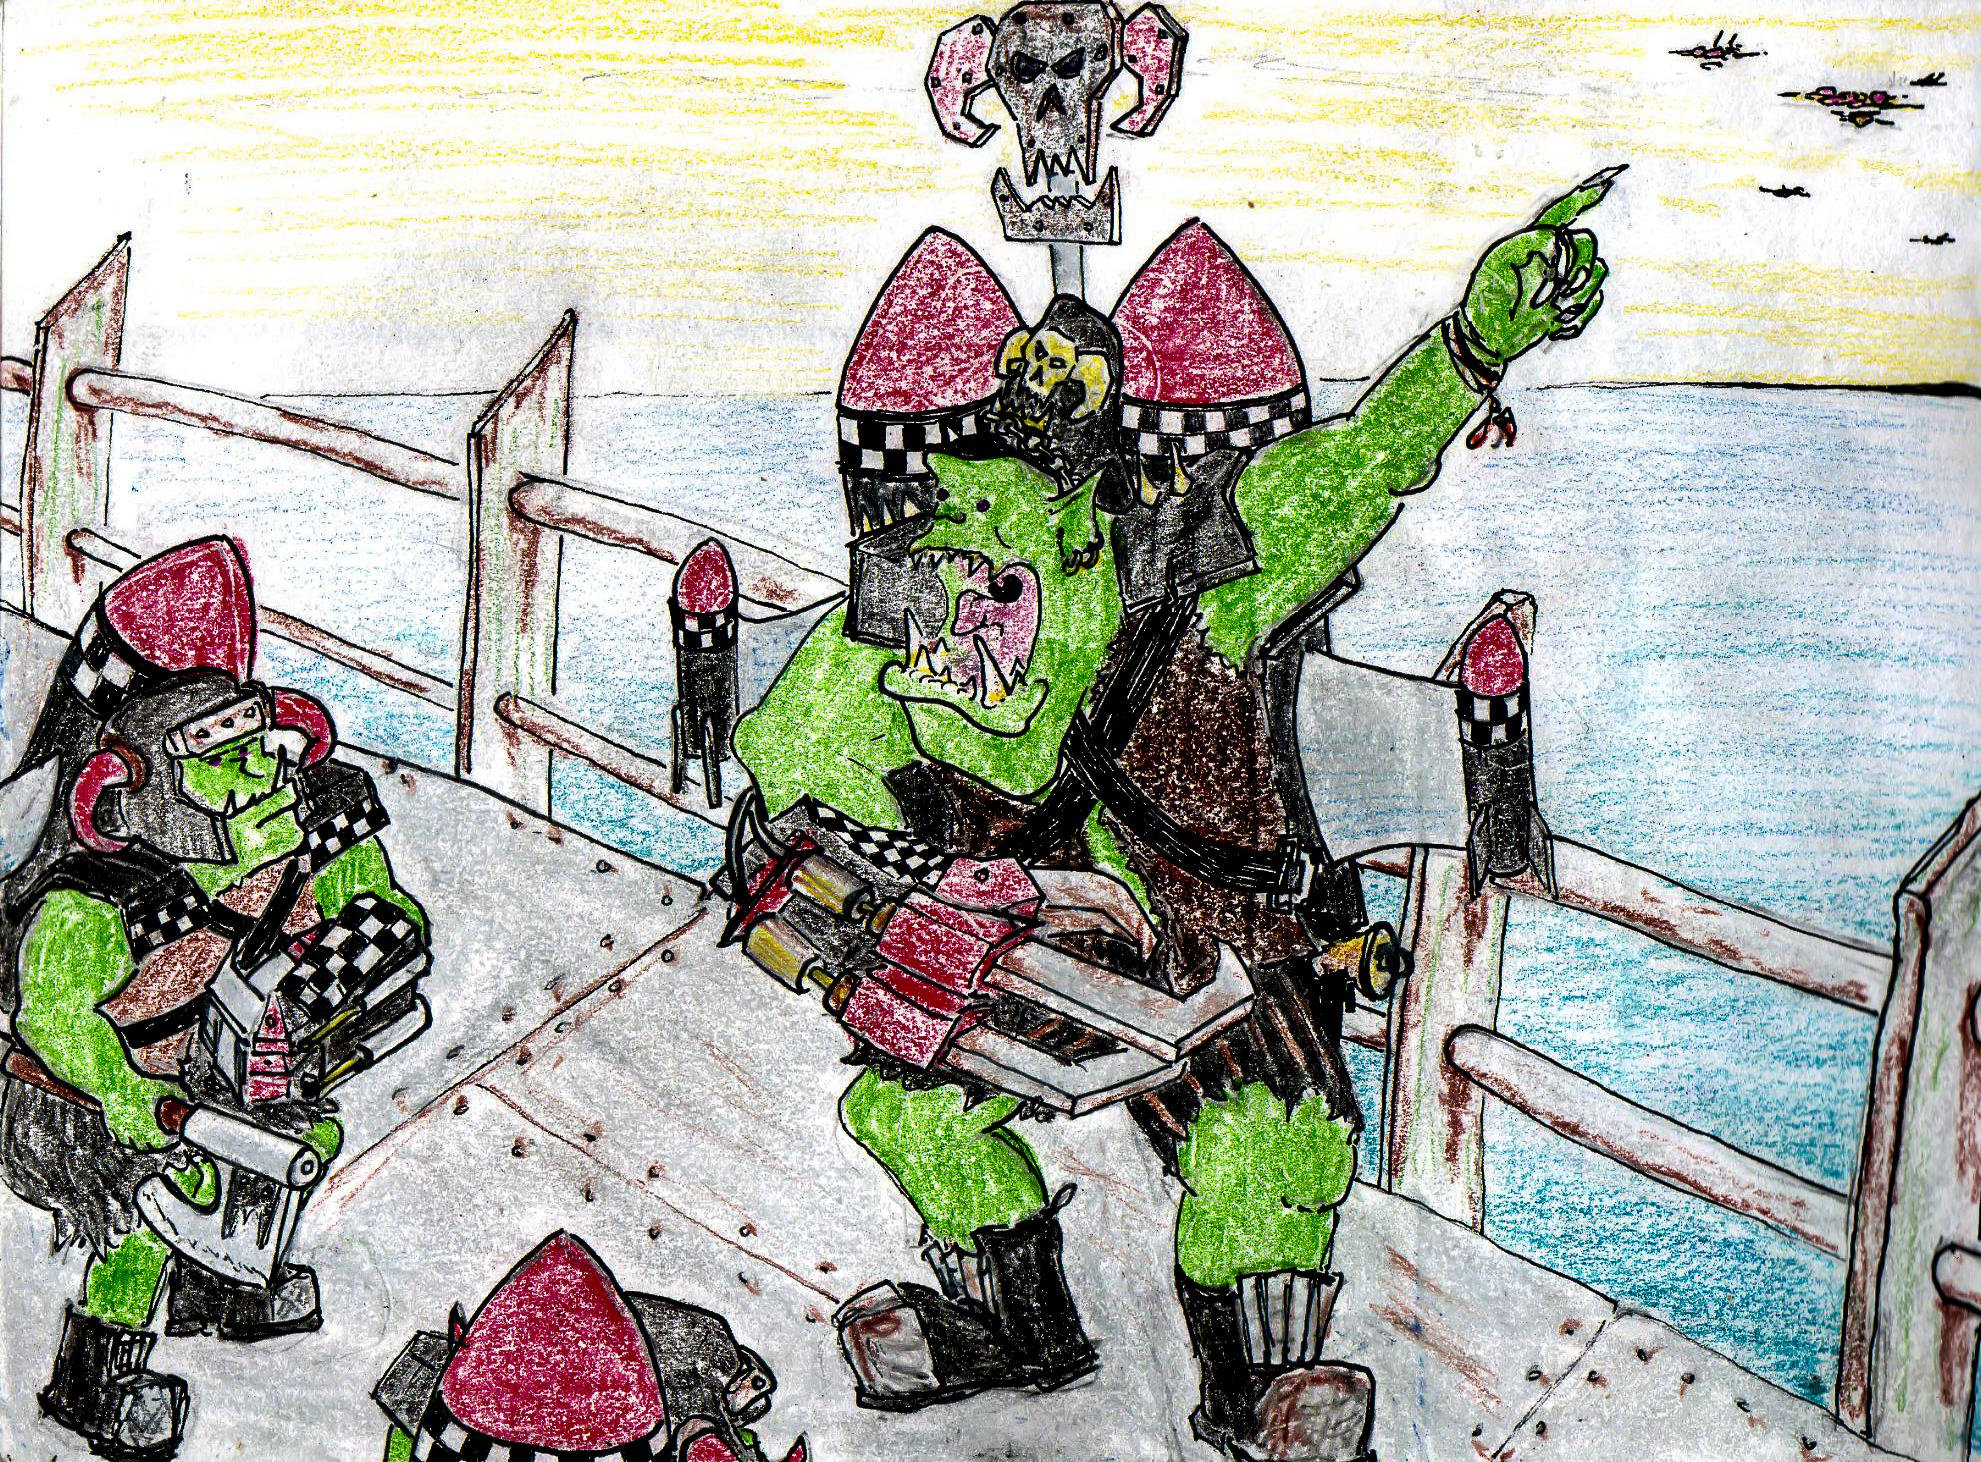 Cartoon, Comics, Drawing, Fiction, Graphic, Grots, Humour, Illustration, Orks, Sketch, Sketching, Warhammer 40,000